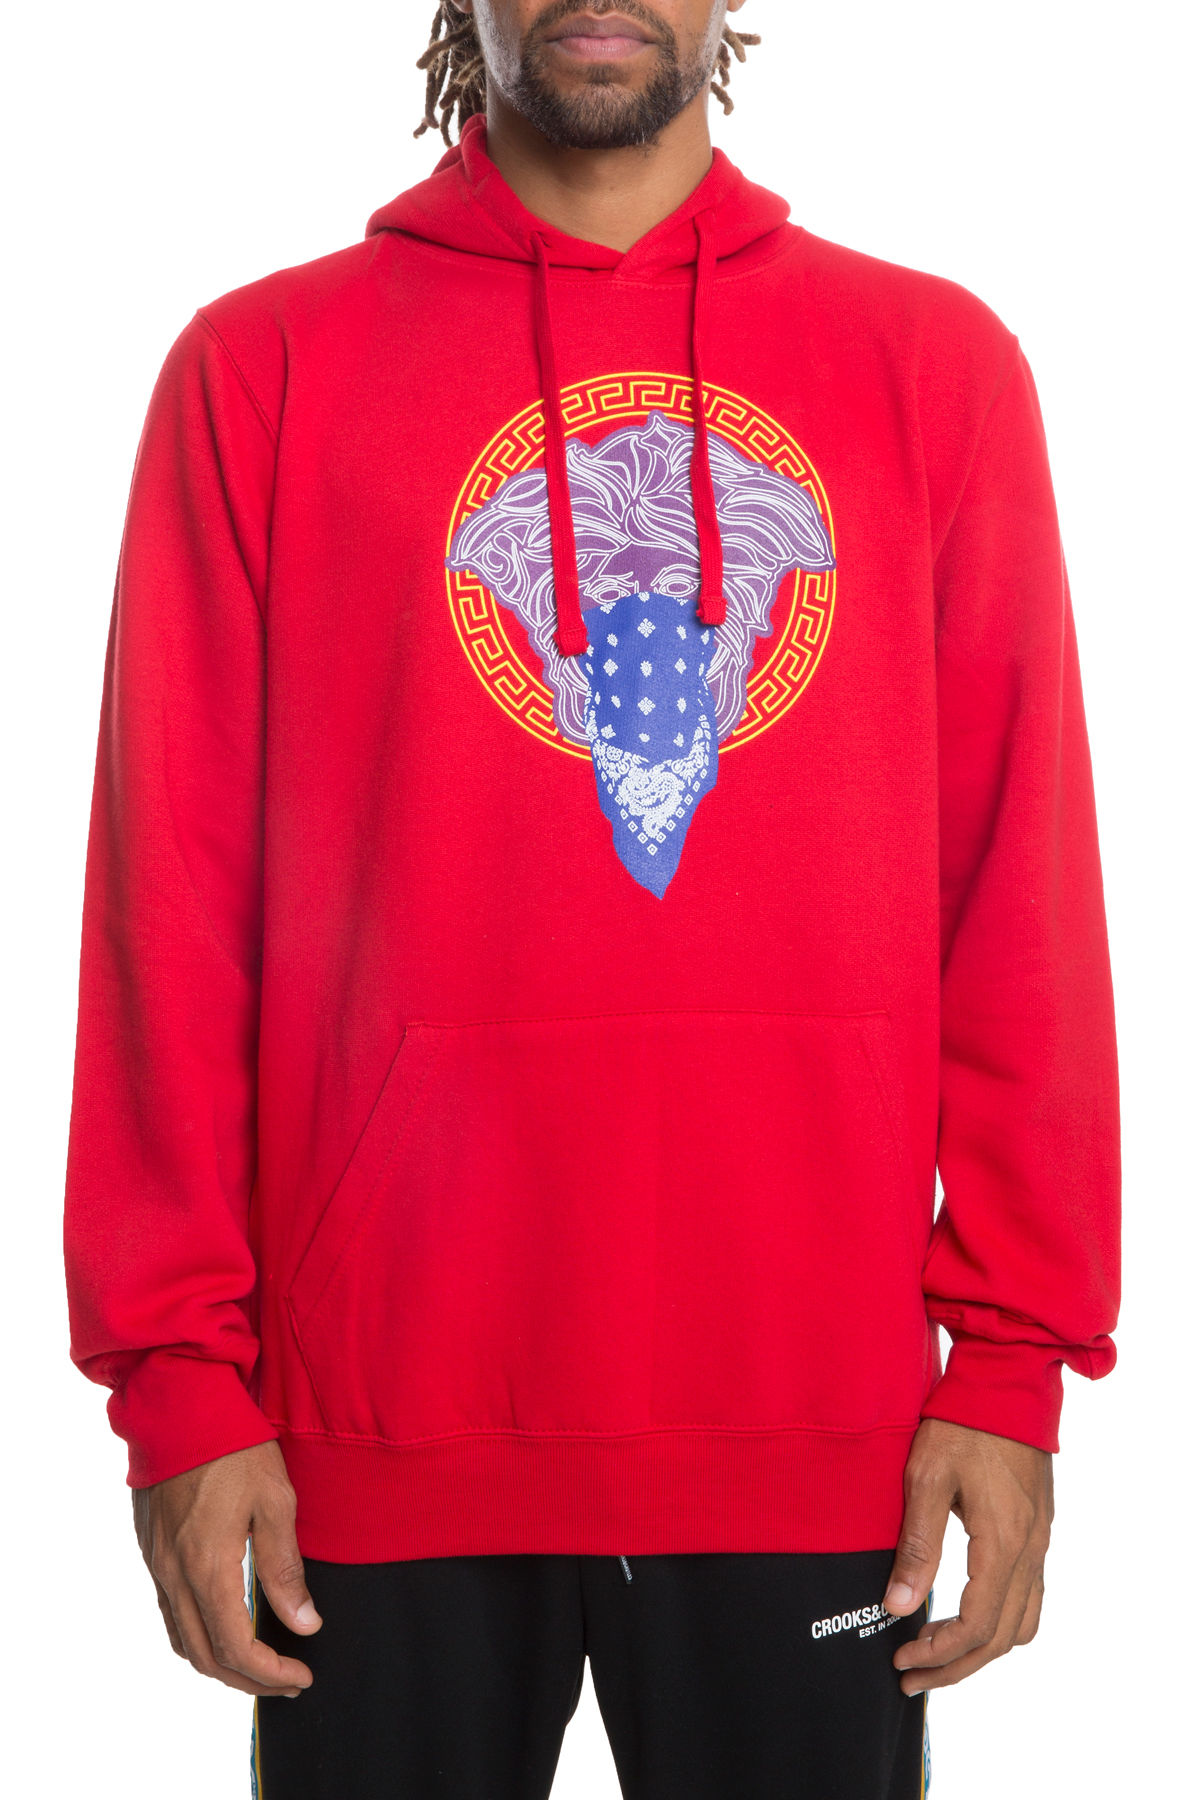 Image of The Bandido Hoodie in Red